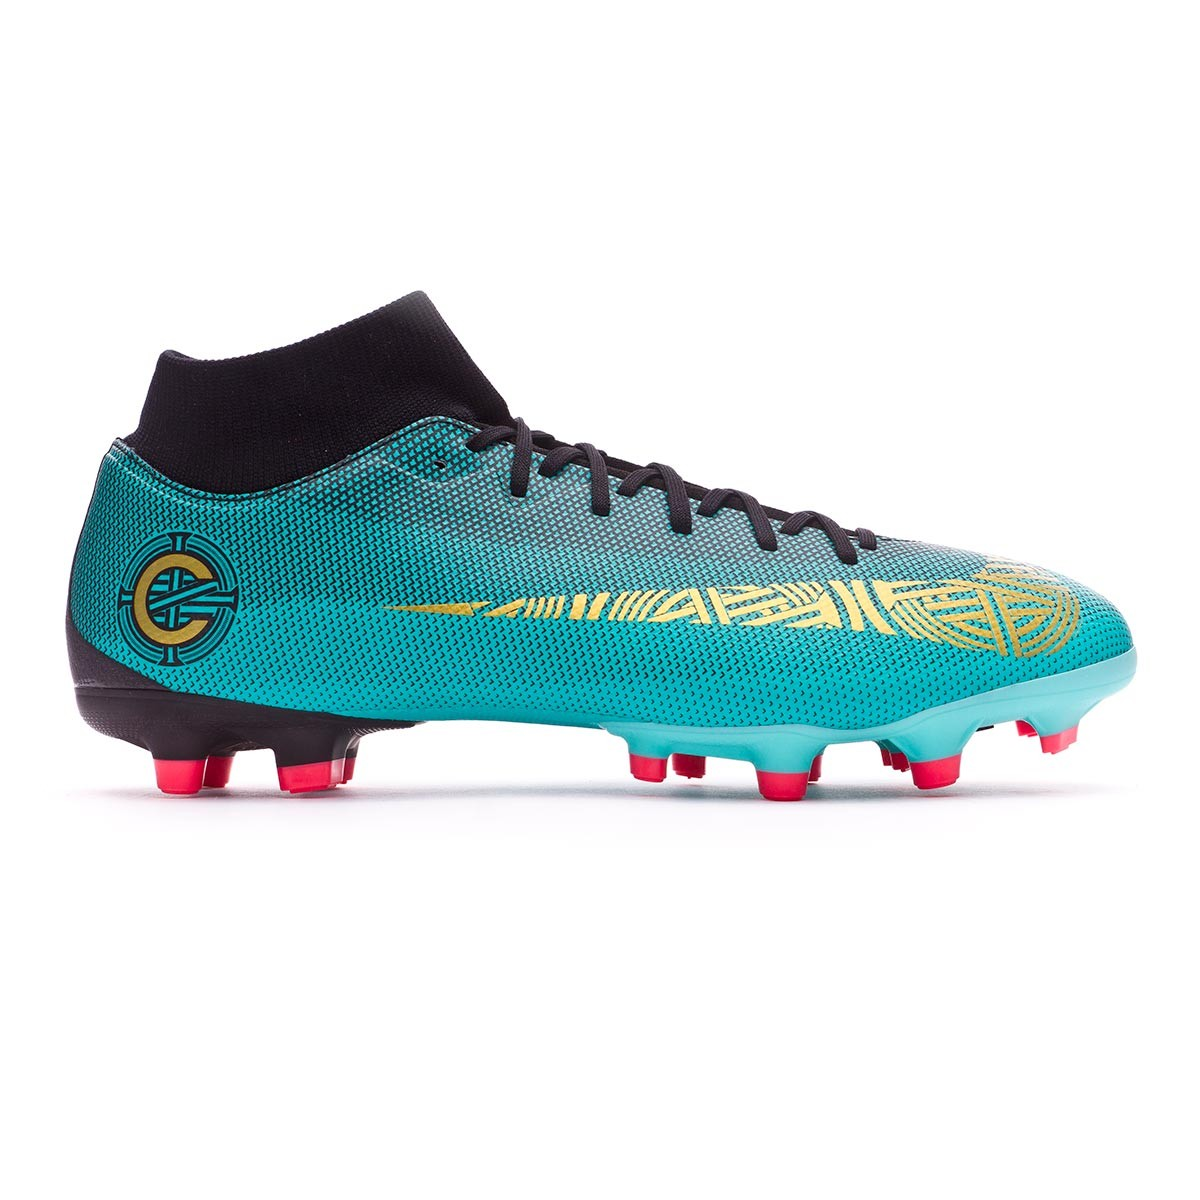 super popular 1f05e 54dd7 Boot Nike Mercurial Superfly VI Academy CR7 MG Clear jade ...